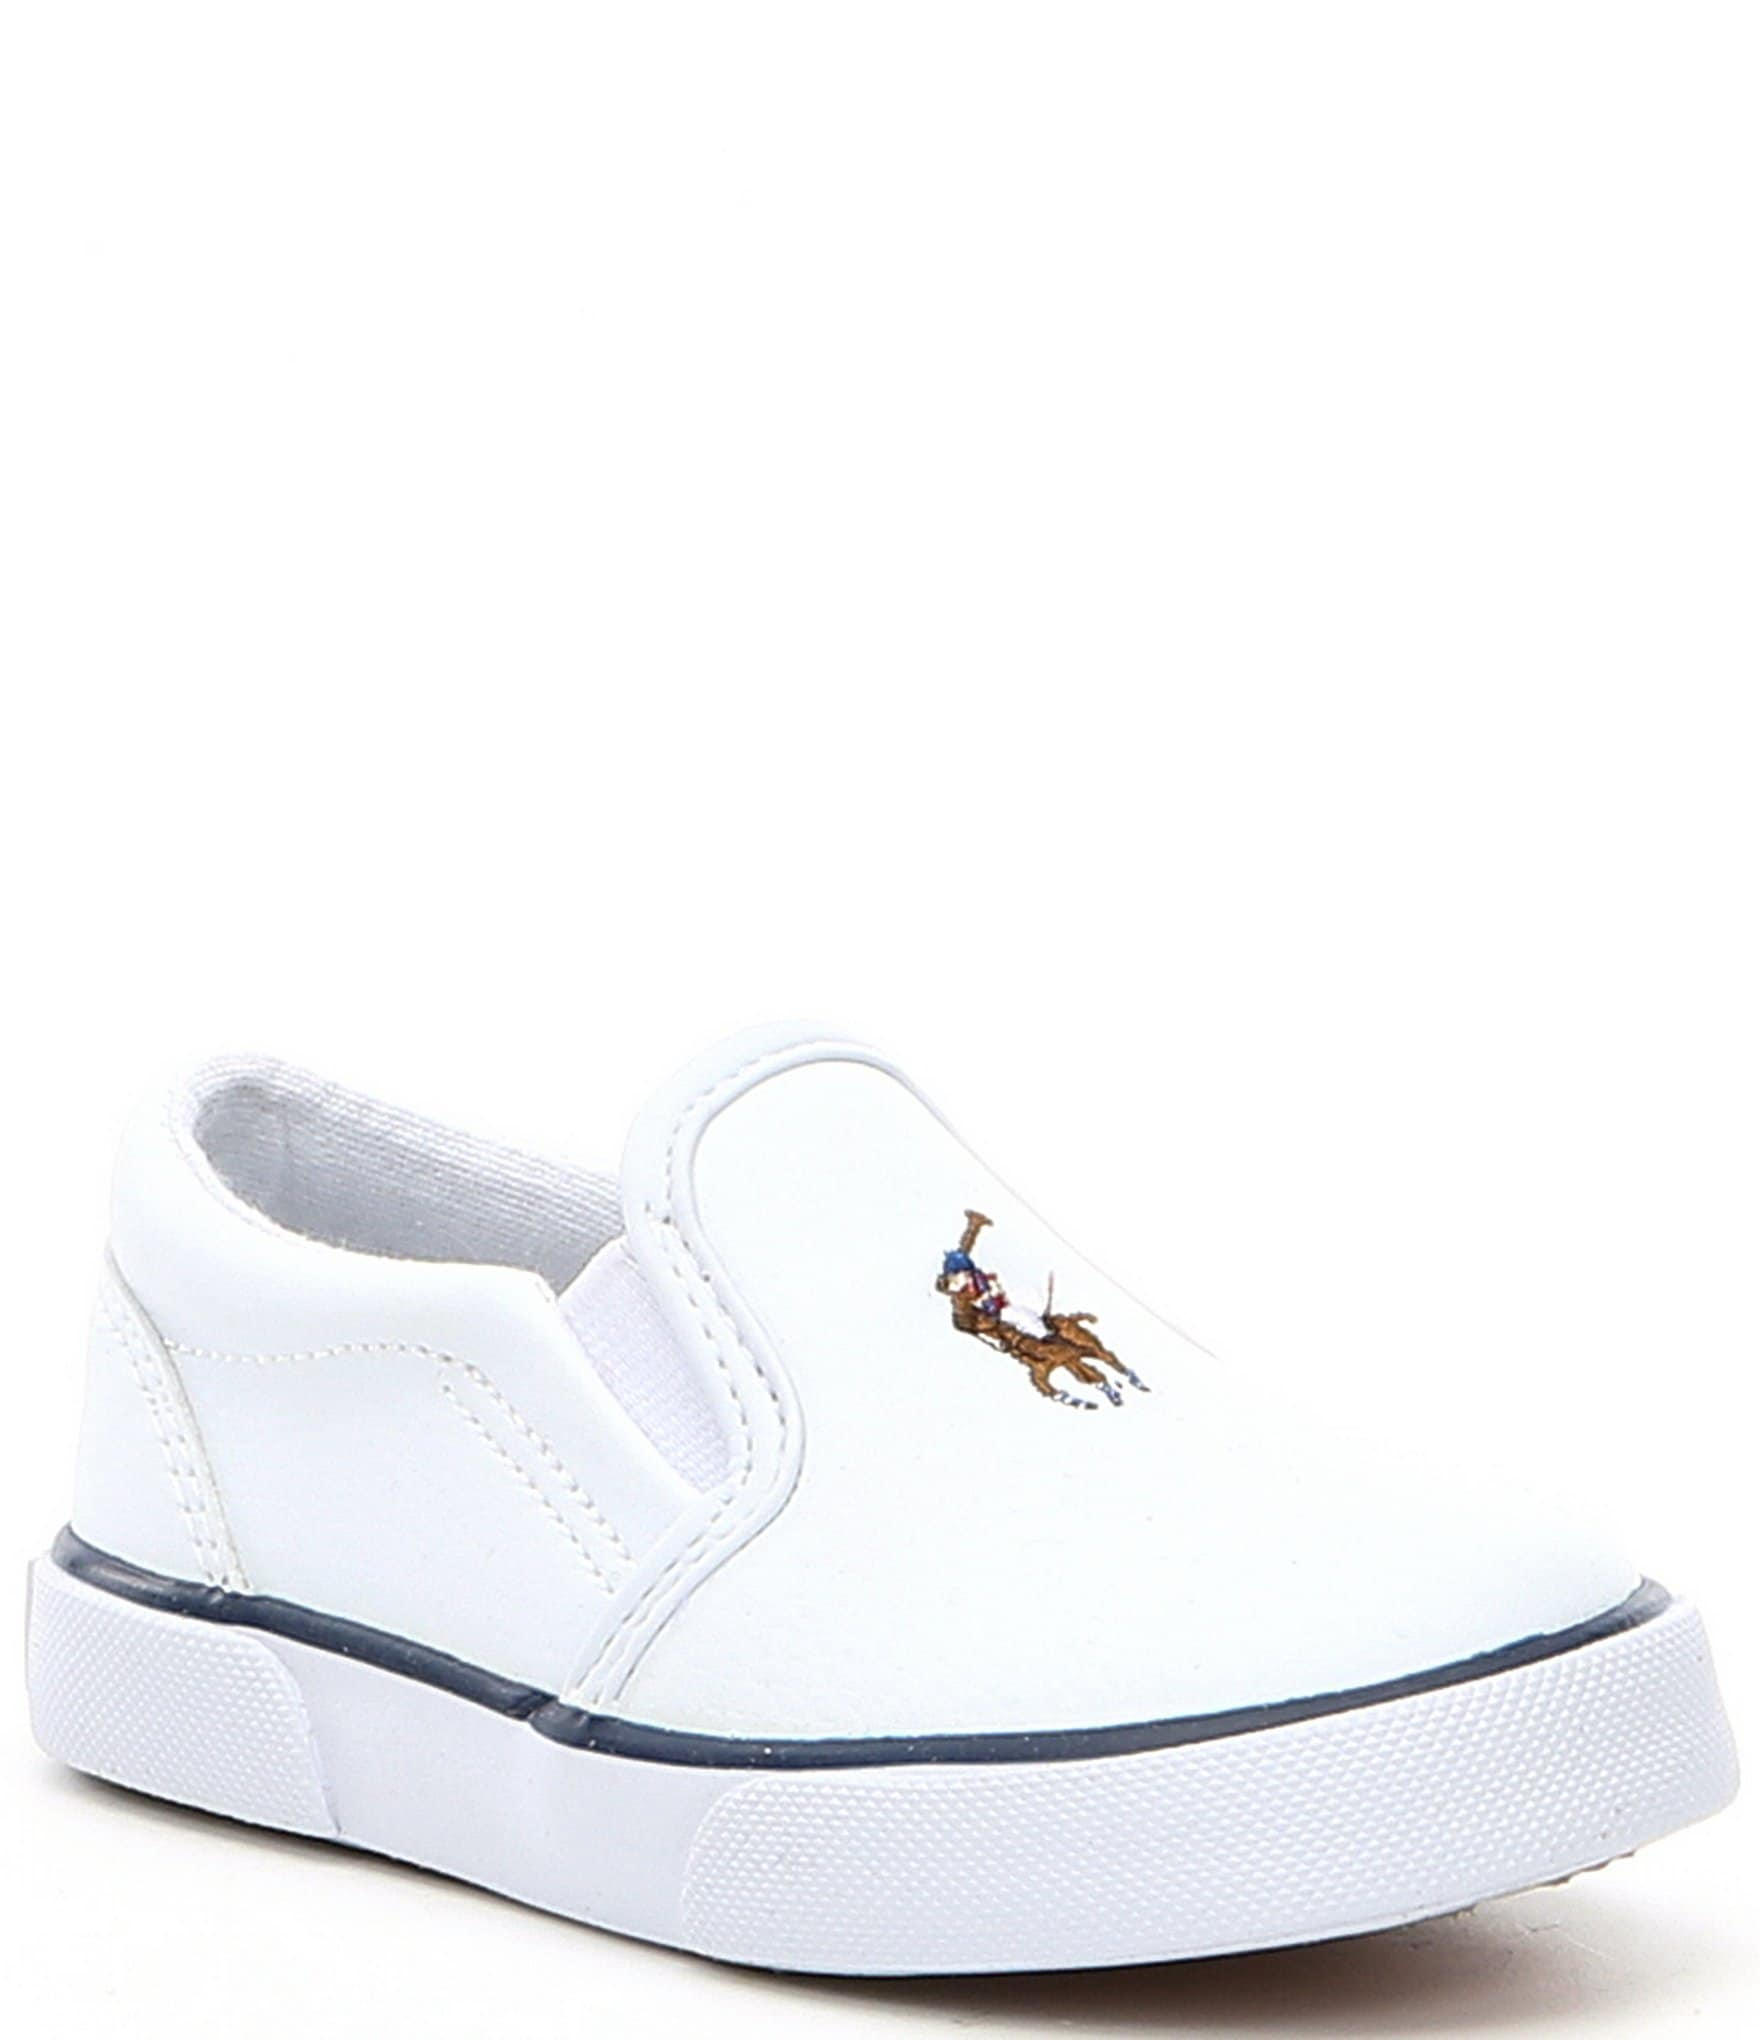 polo ralph lauren shoes 10-50r receptacle meaning in hindi